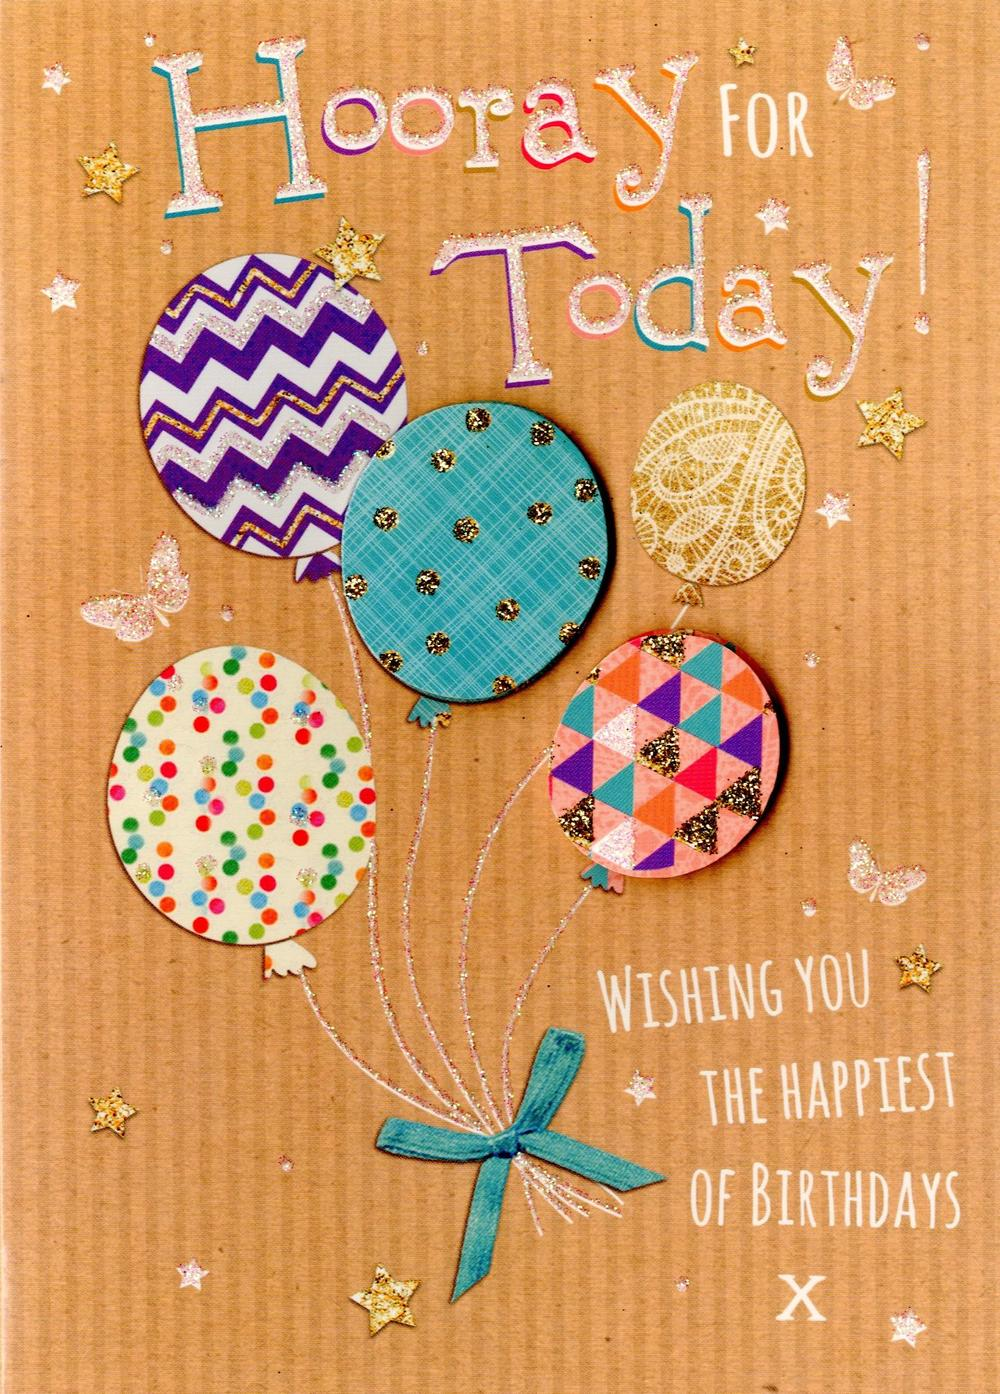 Hooray For Today Birthday Greeting Card